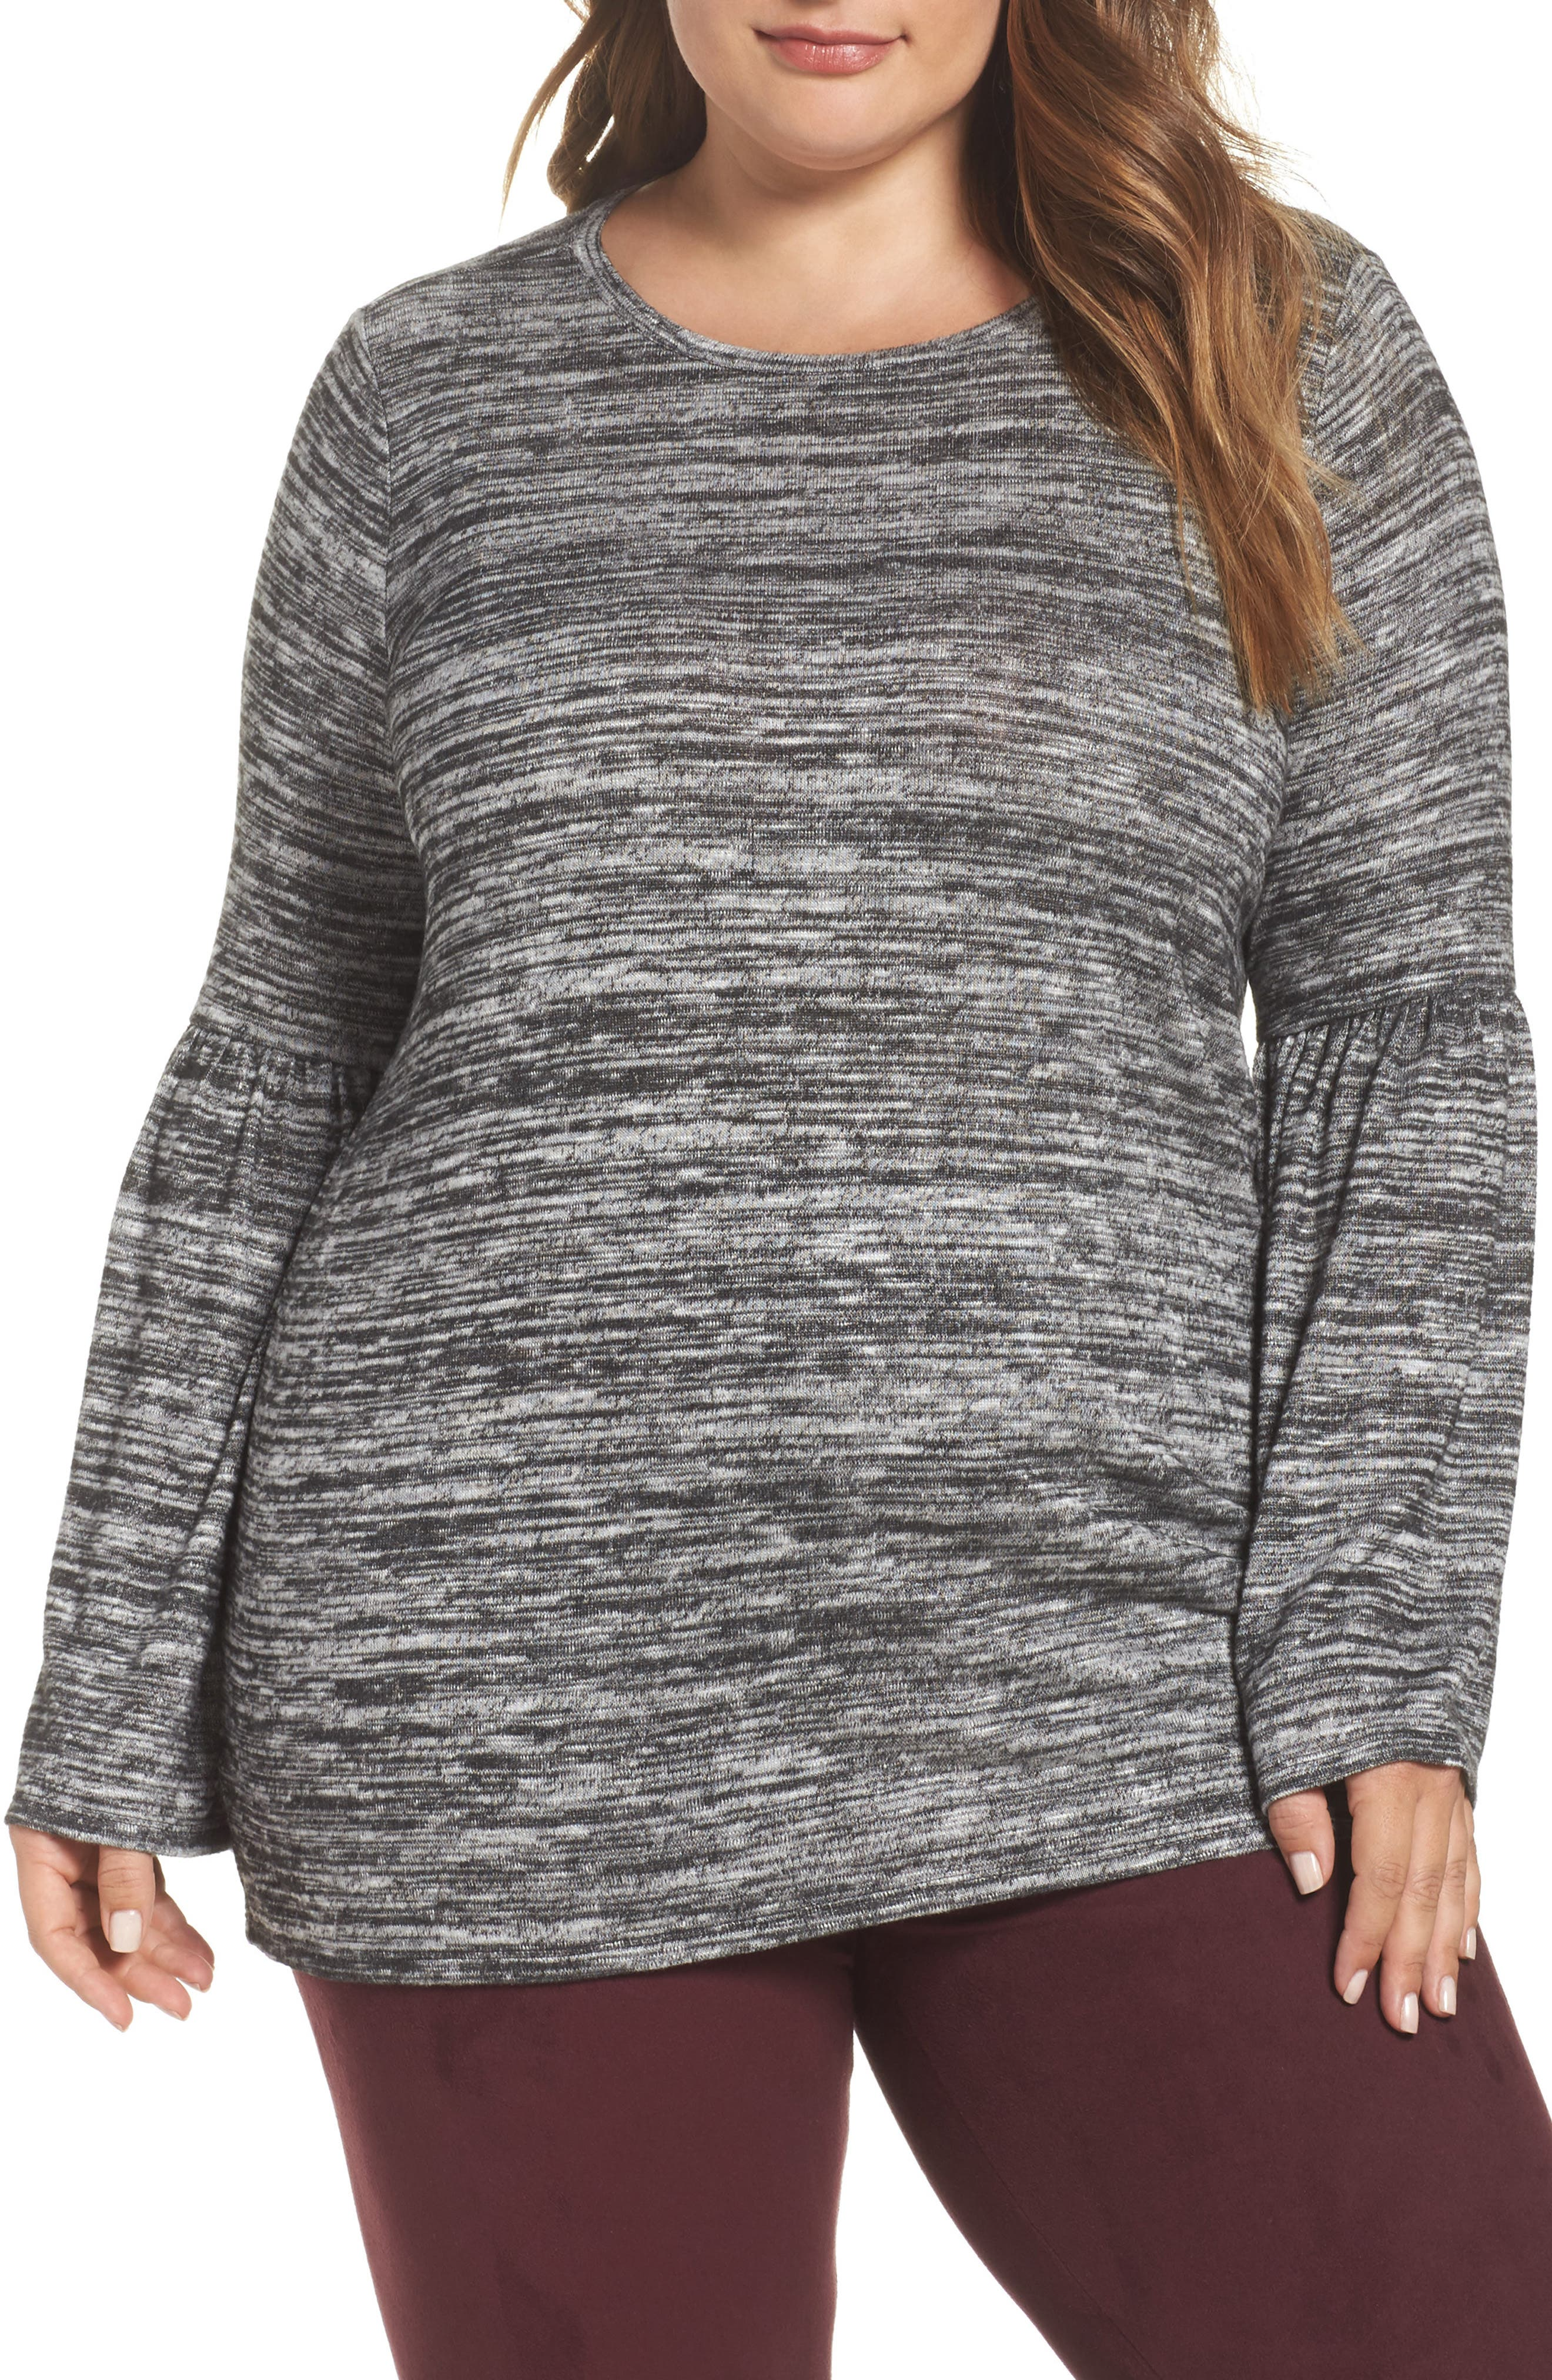 Alternate Image 1 Selected - Two by Vince Camuto Ruched Bell Sleeve Sweater (Plus Size)